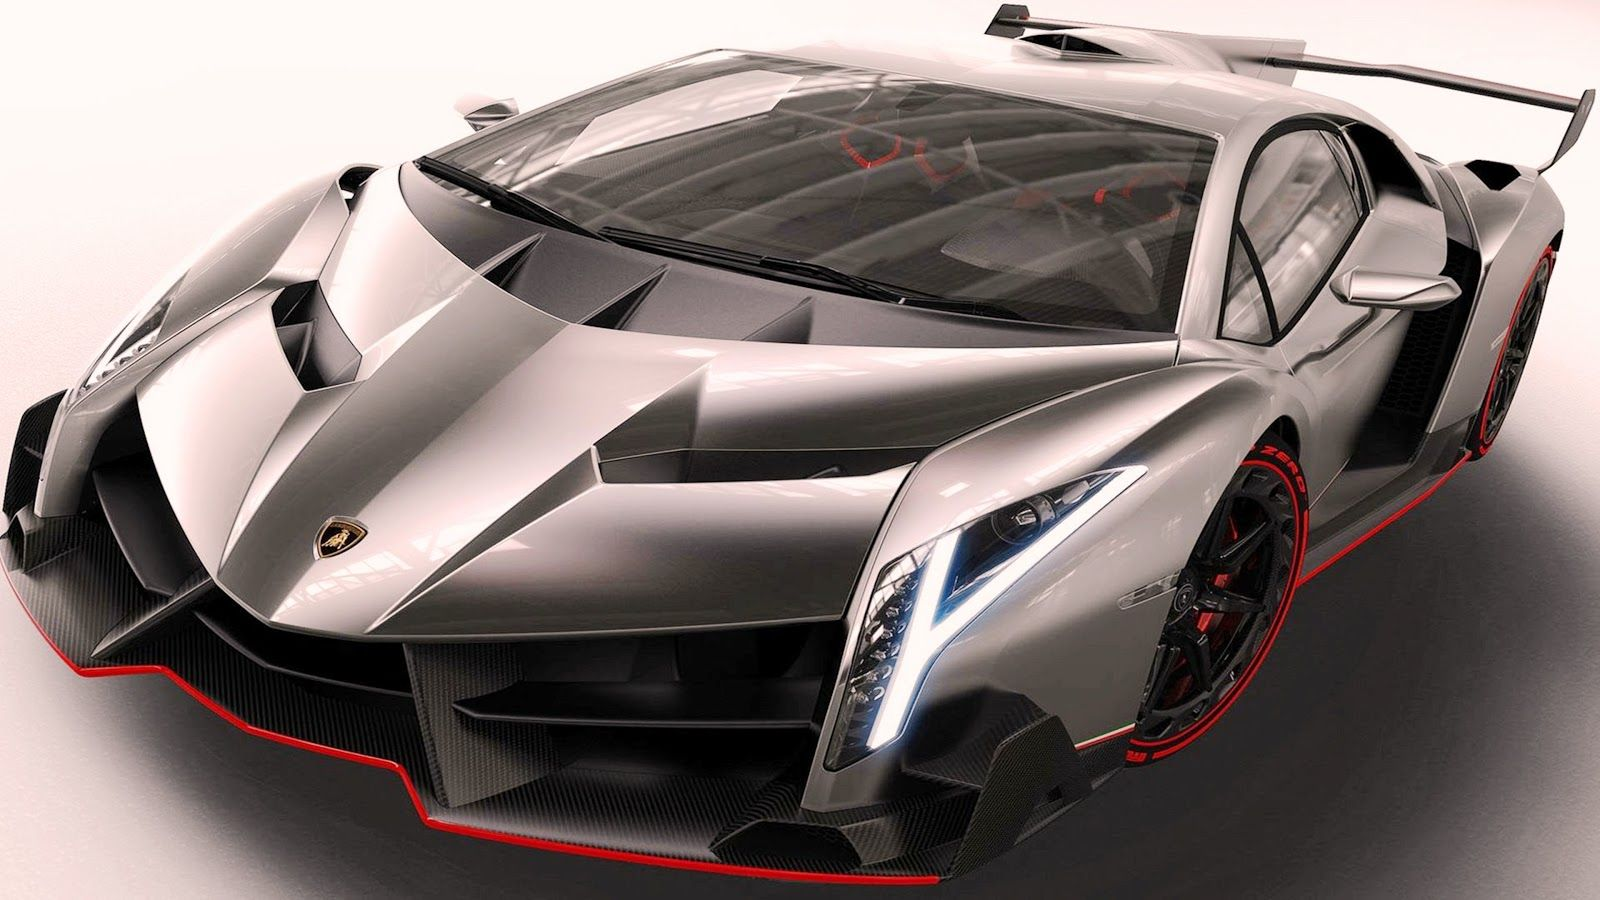 The Incredible Lamborghini Veneno.Weighing 1450 Lbs) And Powered By 552 Kw  Bhp / 750 Ps) Liters Ci) Naturally Aspirated DOHC, Allows This Bull To Do:  In And ...